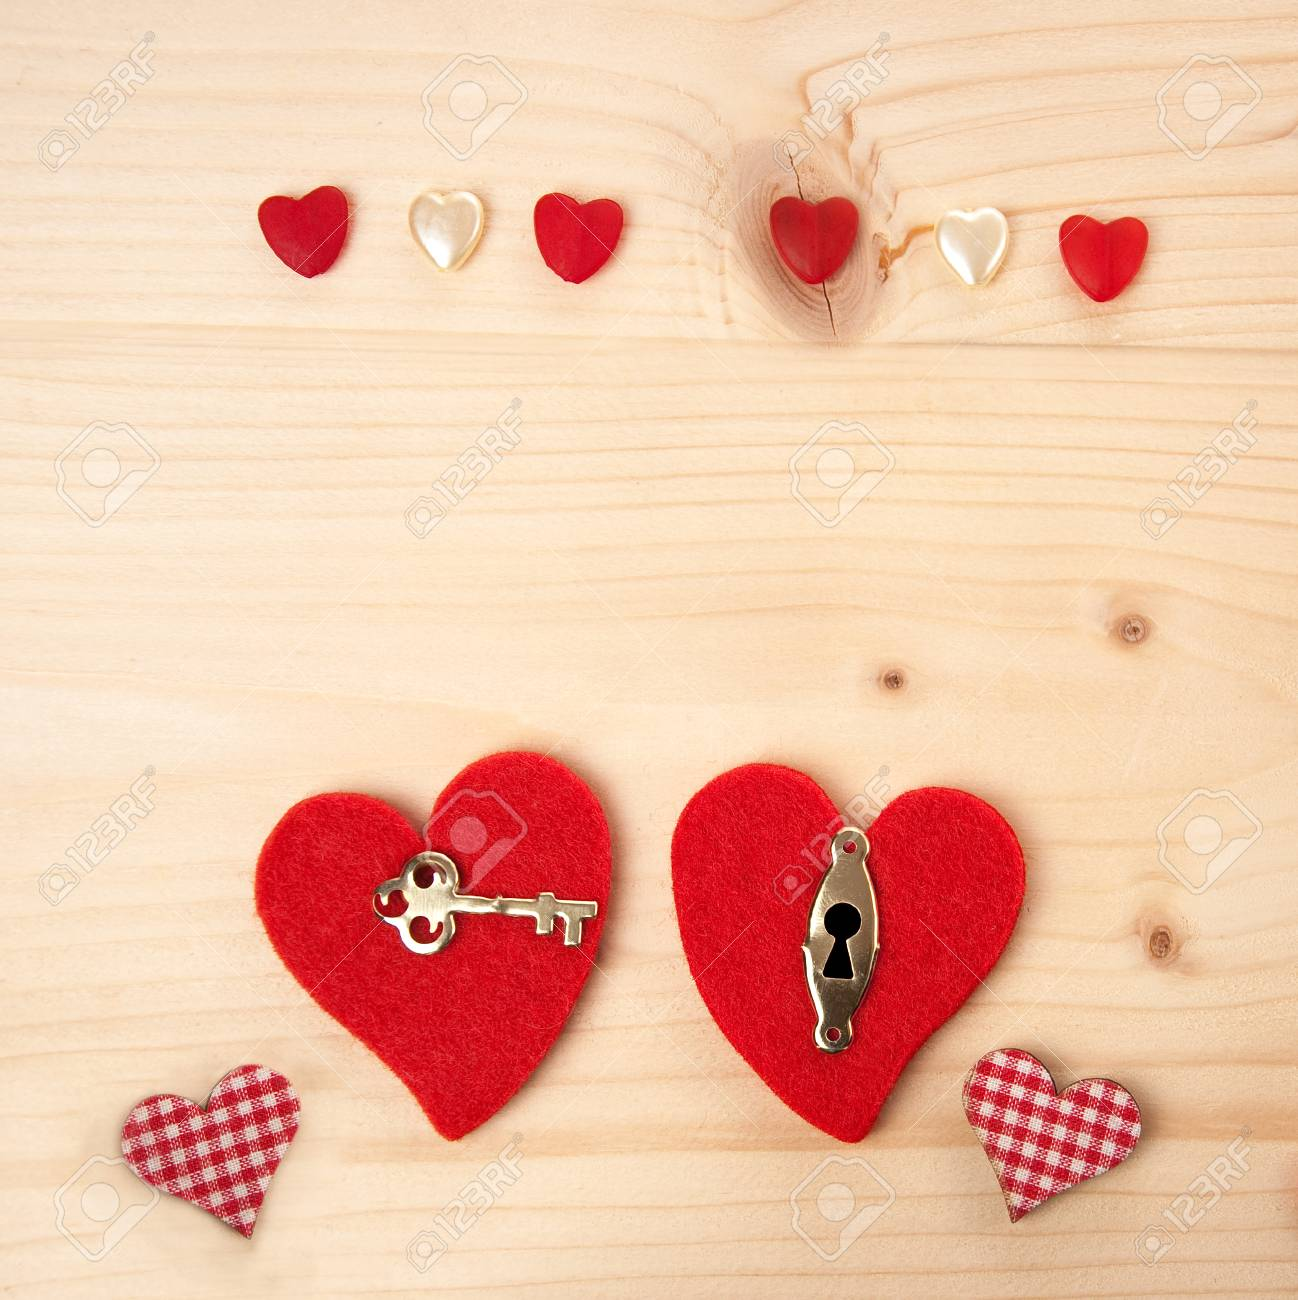 Invitation Card For Wedding Party With Two Red Hearts, Key And ...